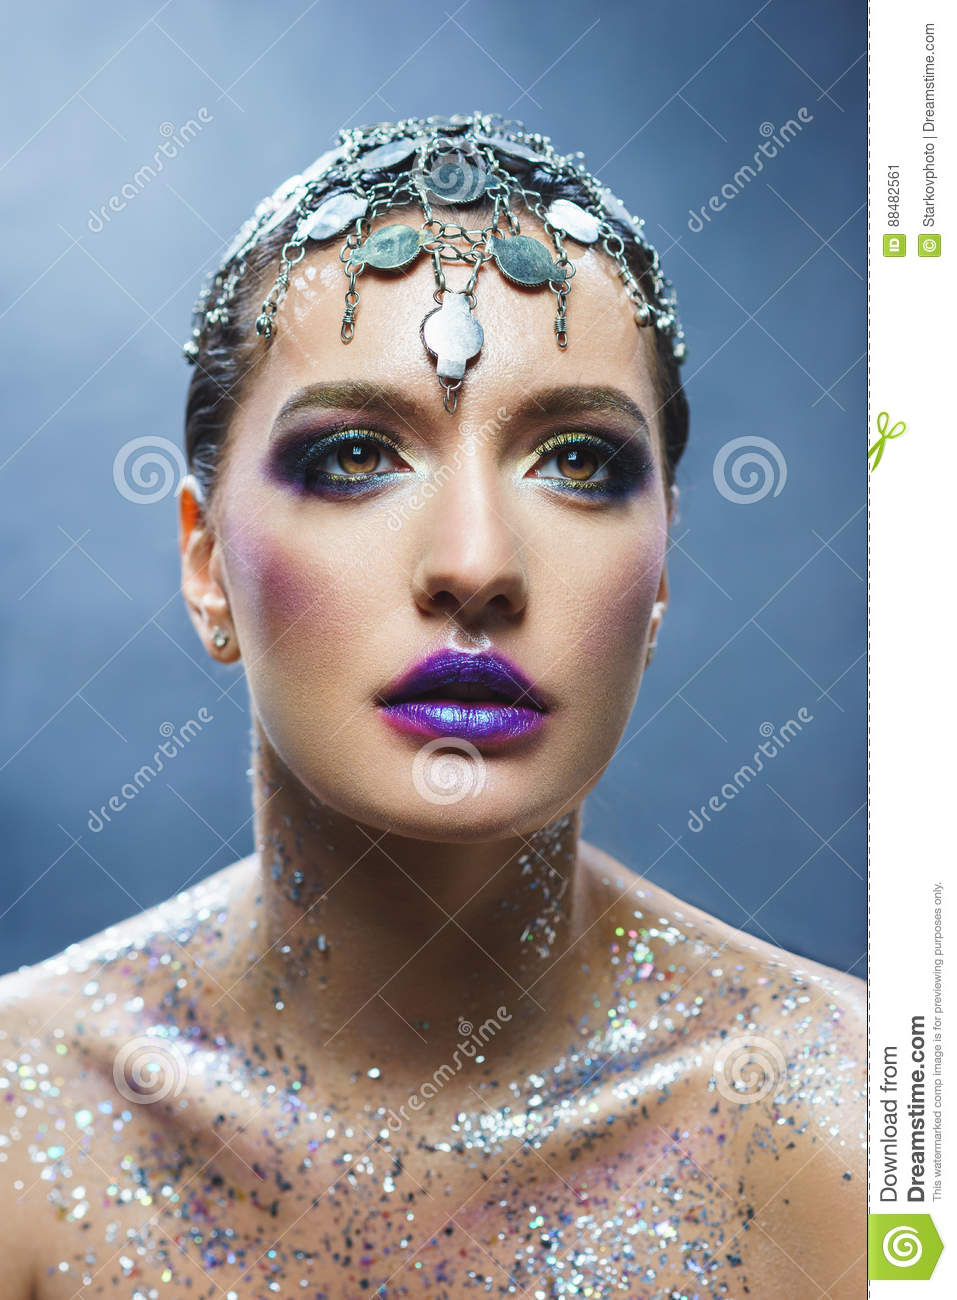 Portrait of a young attractive girl with a creative make-up and decorations.